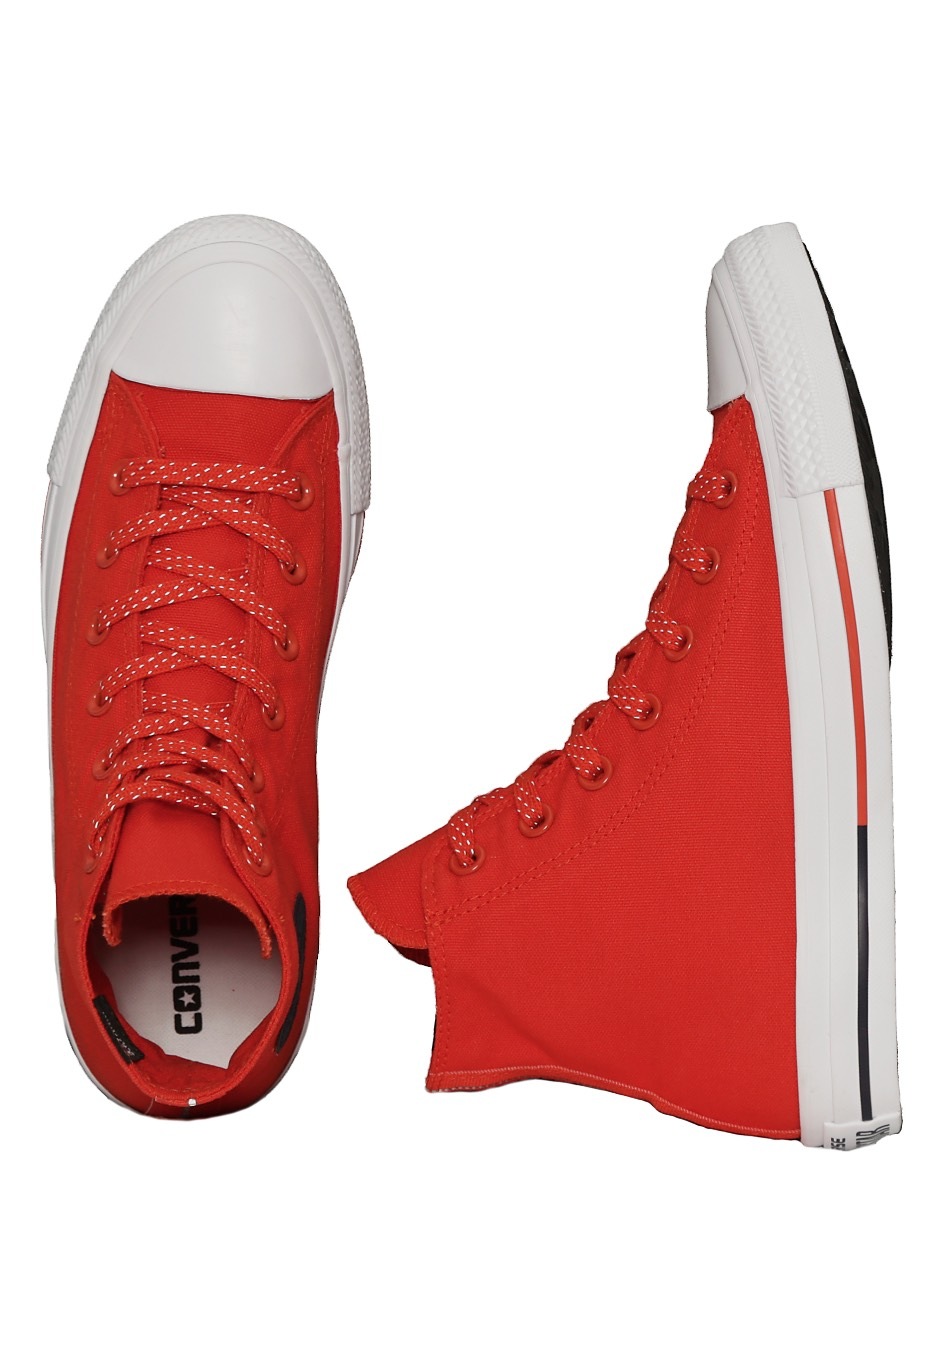 c5e13811c32c Converse - Chuck Taylor All Star Hi Signal Red White Obsidian - Girl Shoes  - Impericon.com UK